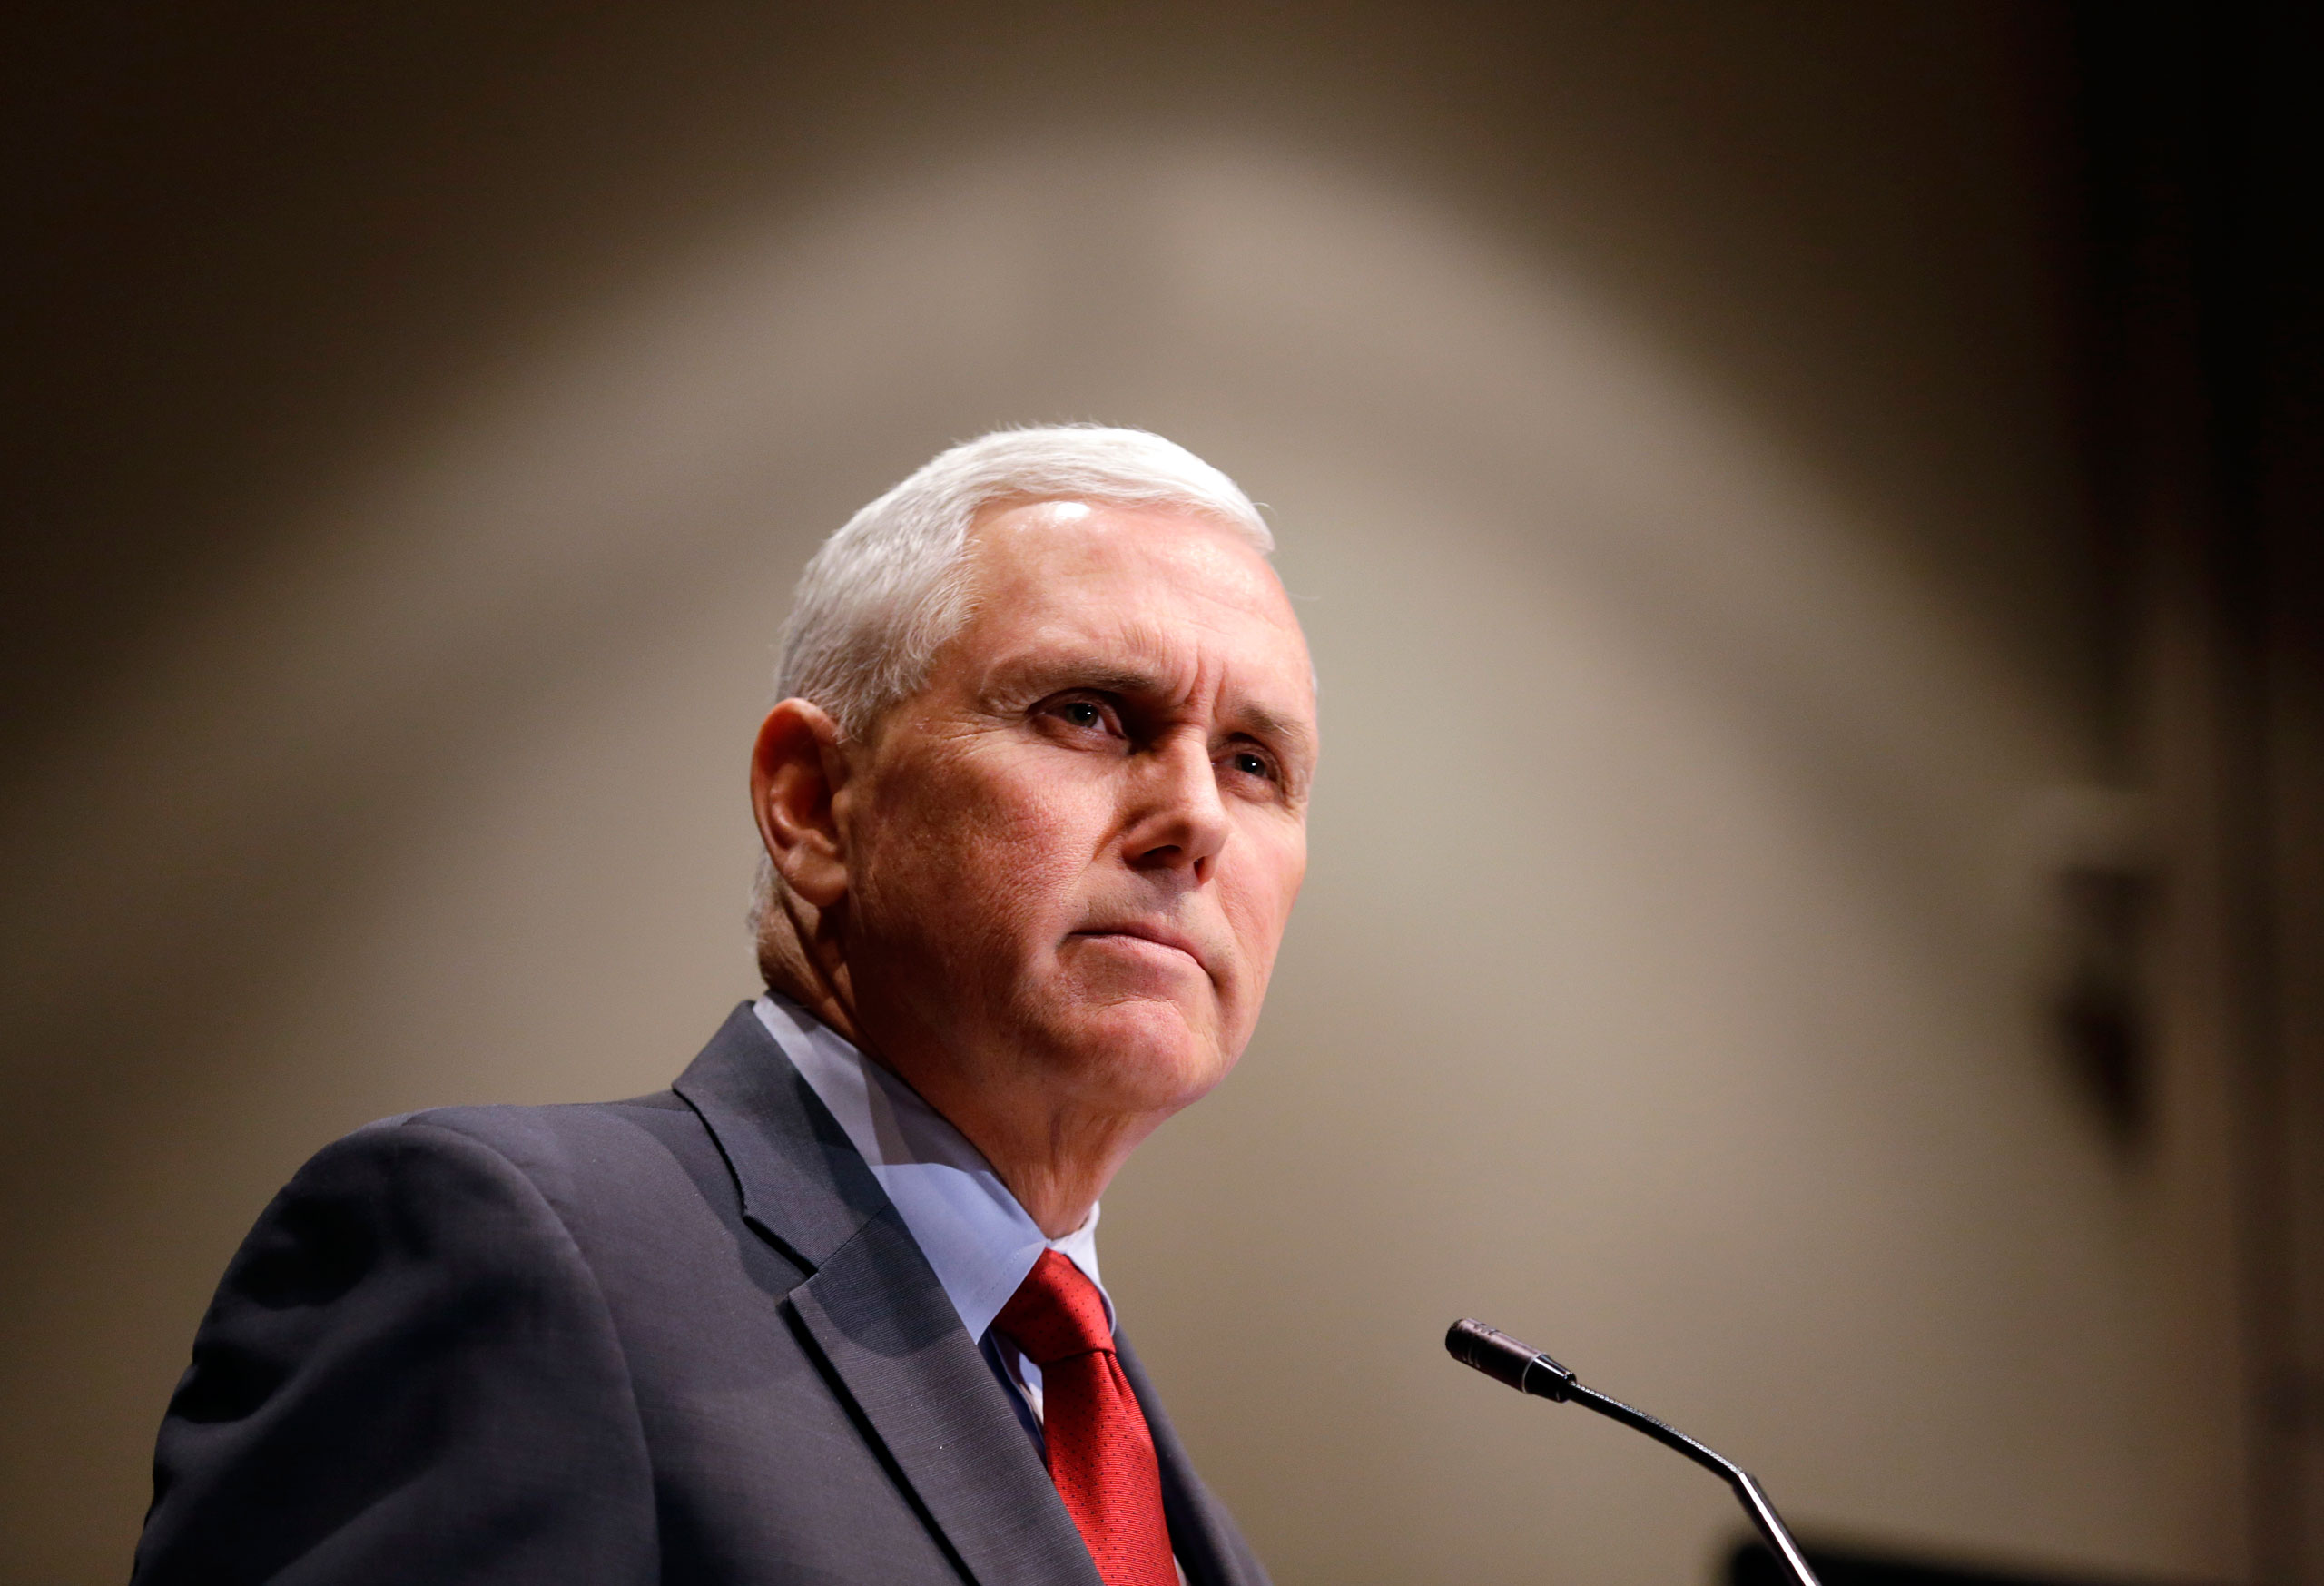 Indiana Gov. Mike Pence announces that the Centers for Medicaid and Medicare Services has approved the state's waiver request for the plan his administration calls HIP 2.0, during a speech in Indianapolis.